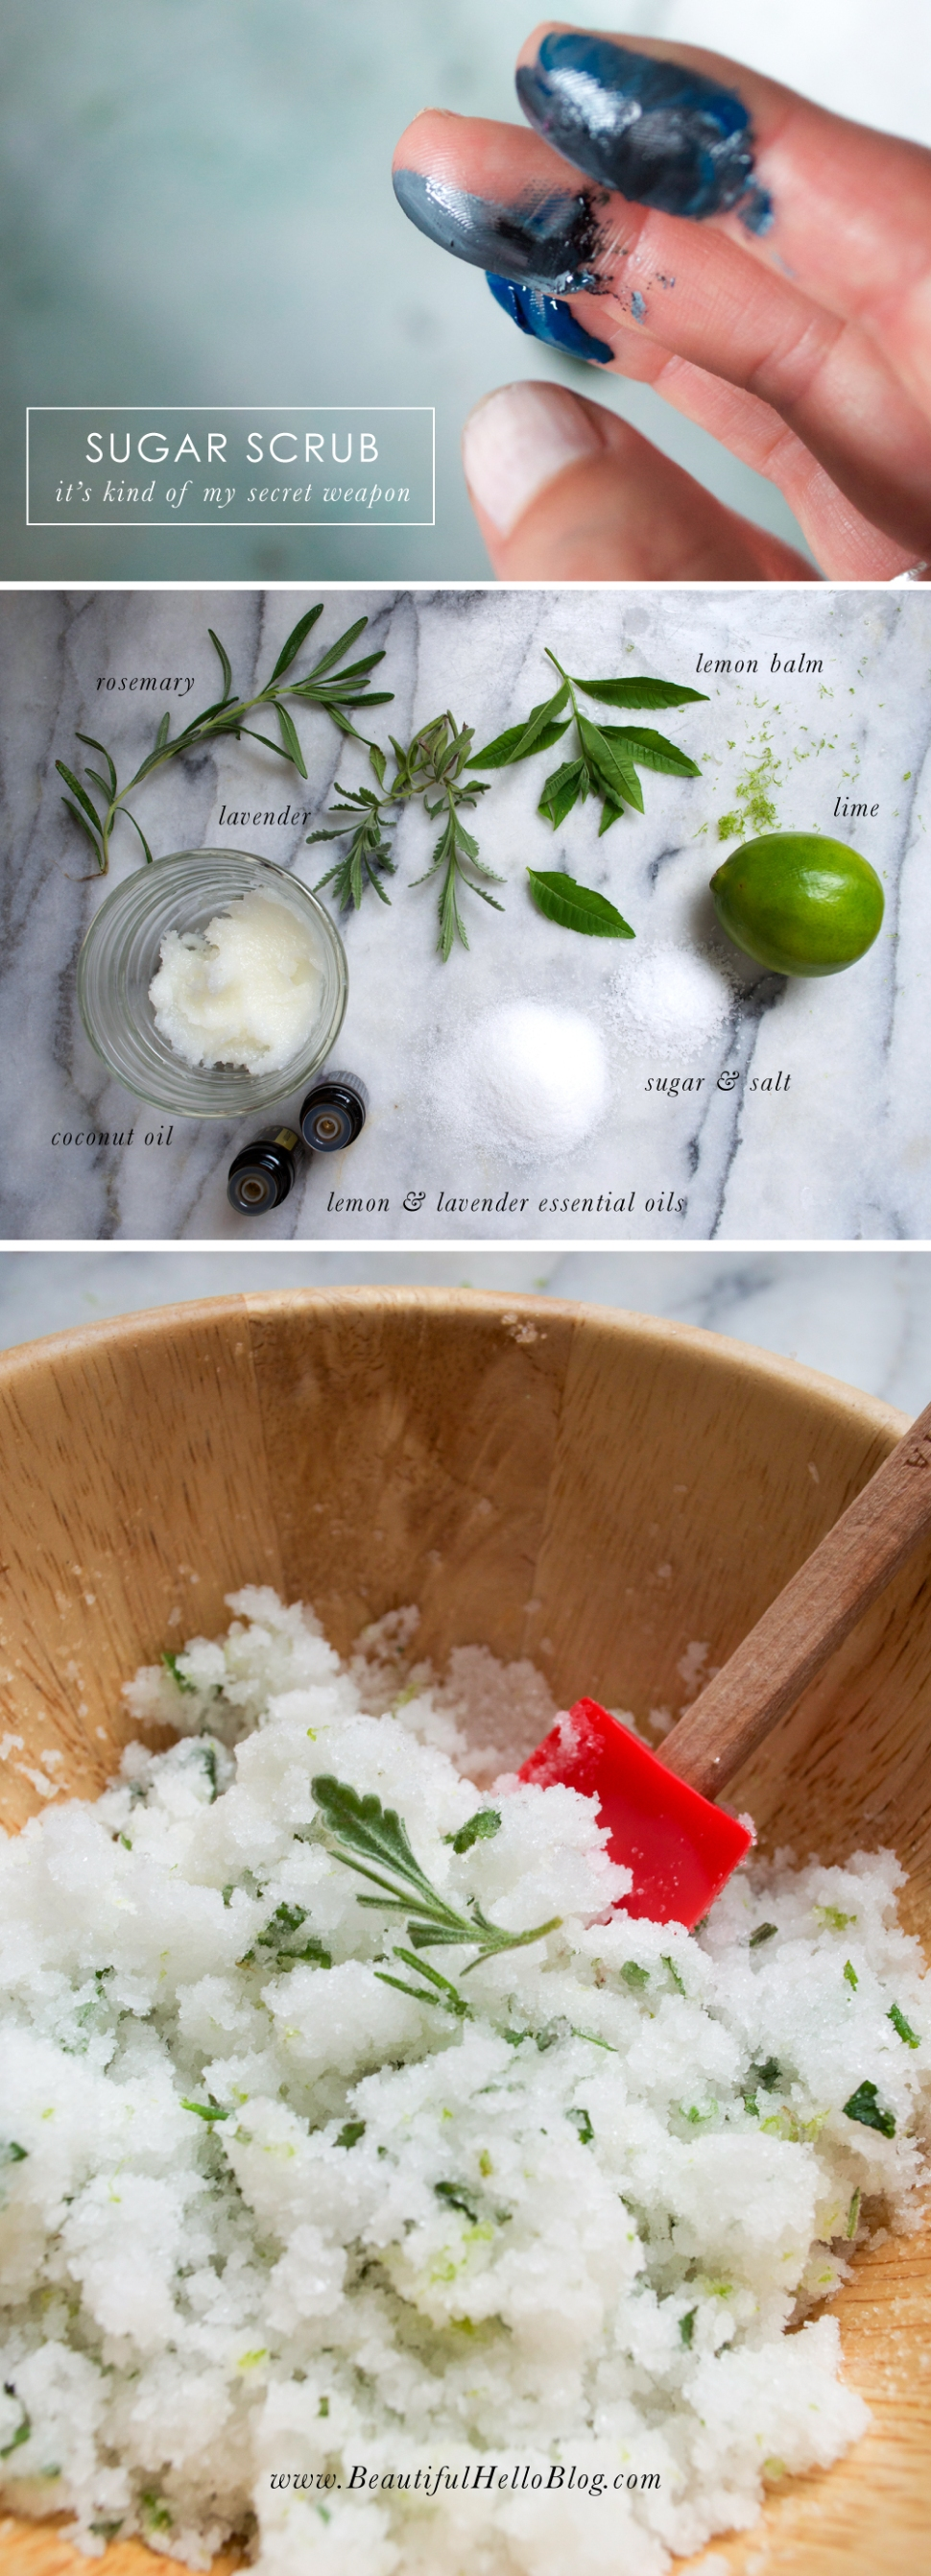 Sugar scrub DIY: an artists best kept secret | Beautiful Hello Blog